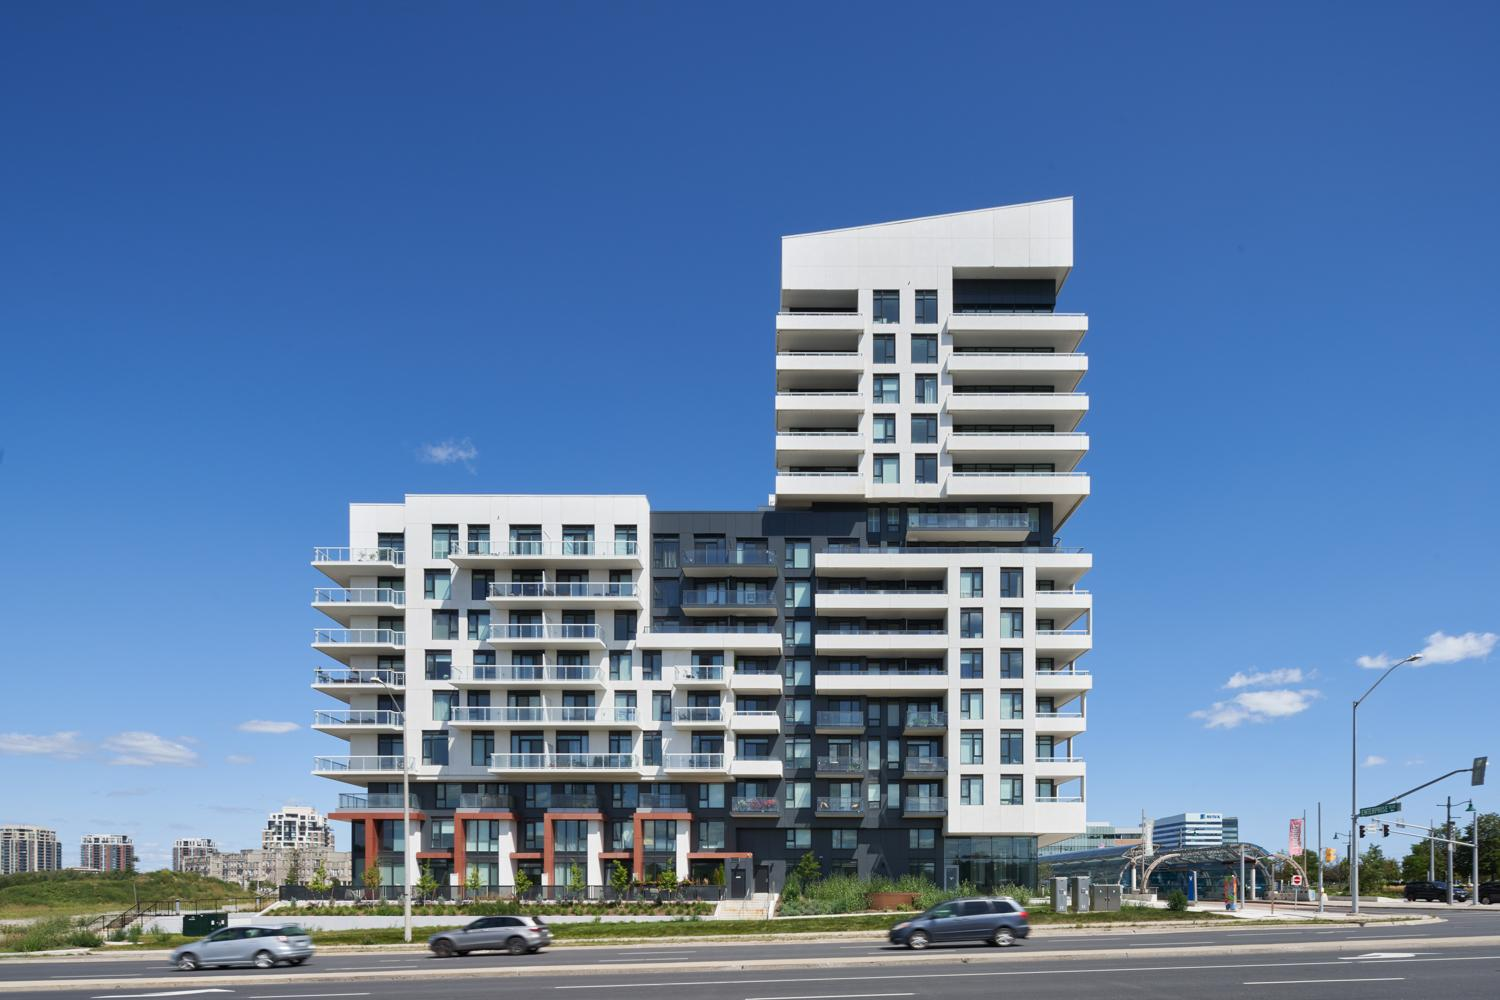 York Condos profile of the building showing white clad balconies